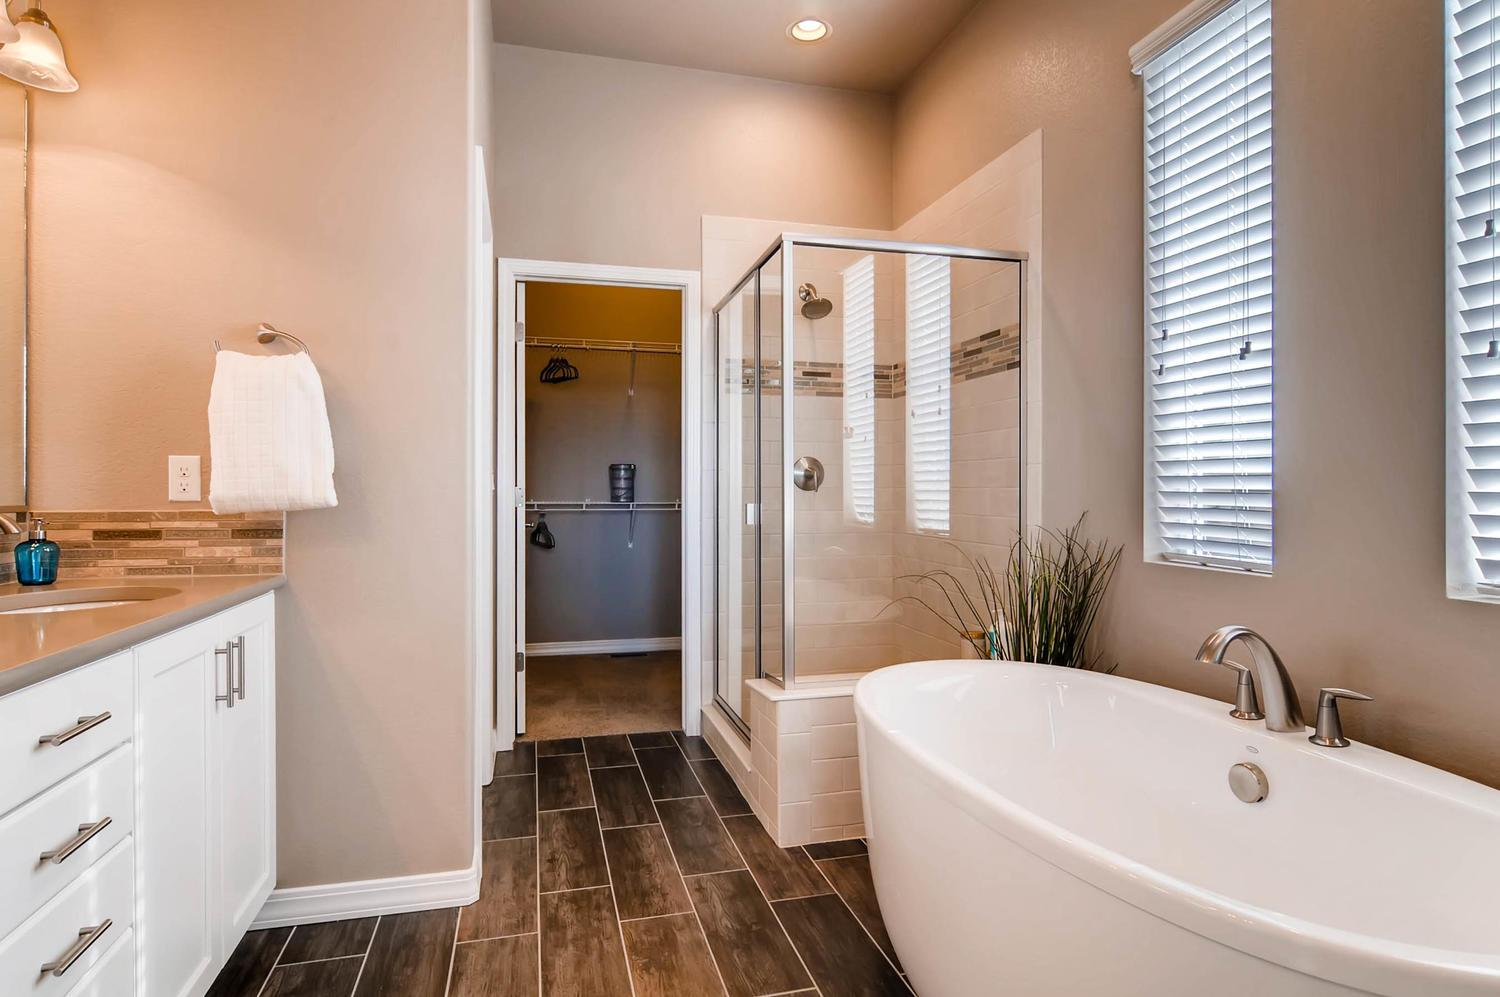 Bathroom featured in the San Isabel II By Classic Homes in Colorado Springs, CO